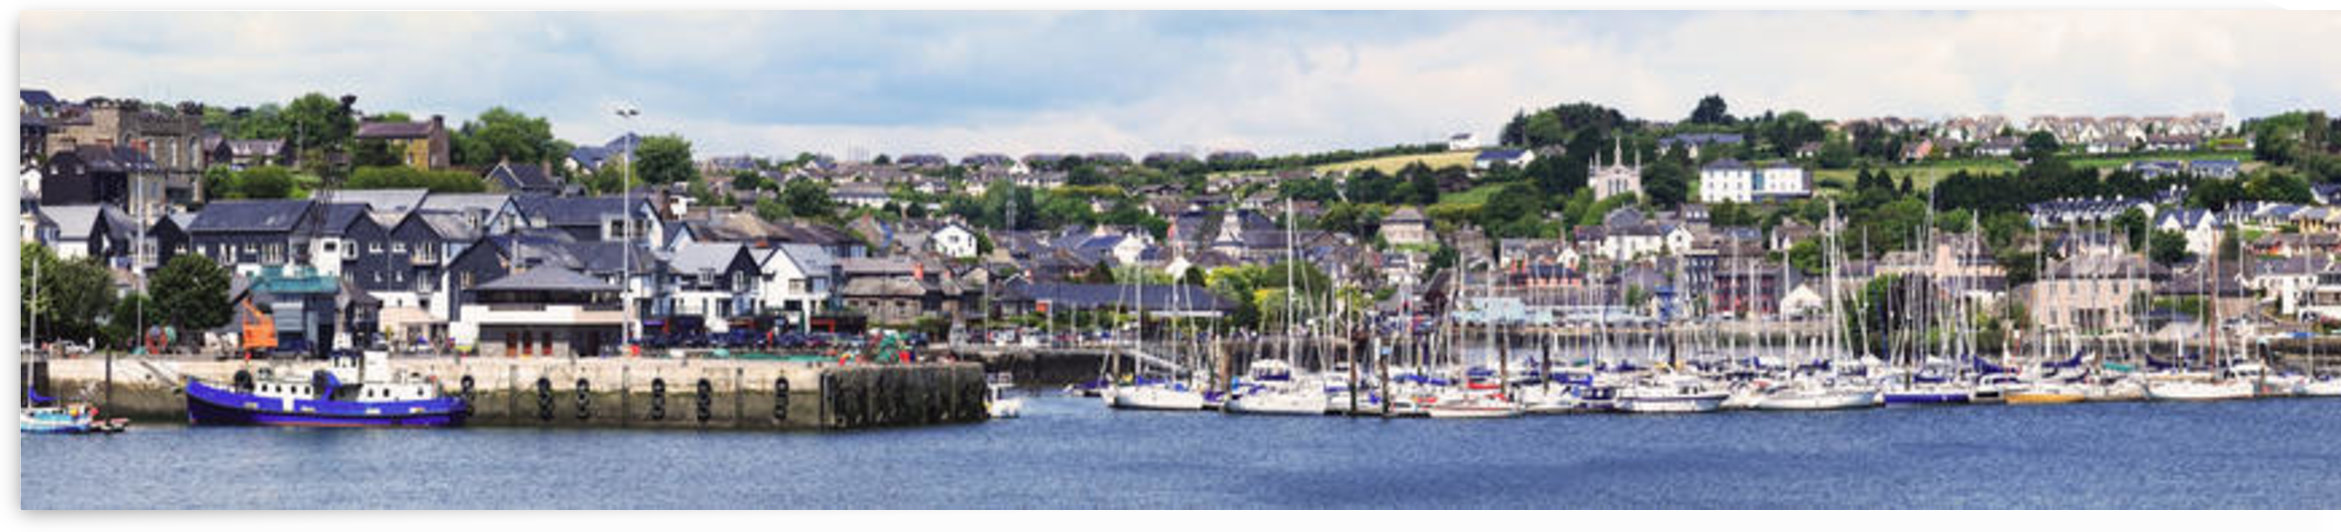 A busy harbour and waterfront;Kinsale county cork ireland by PacificStock